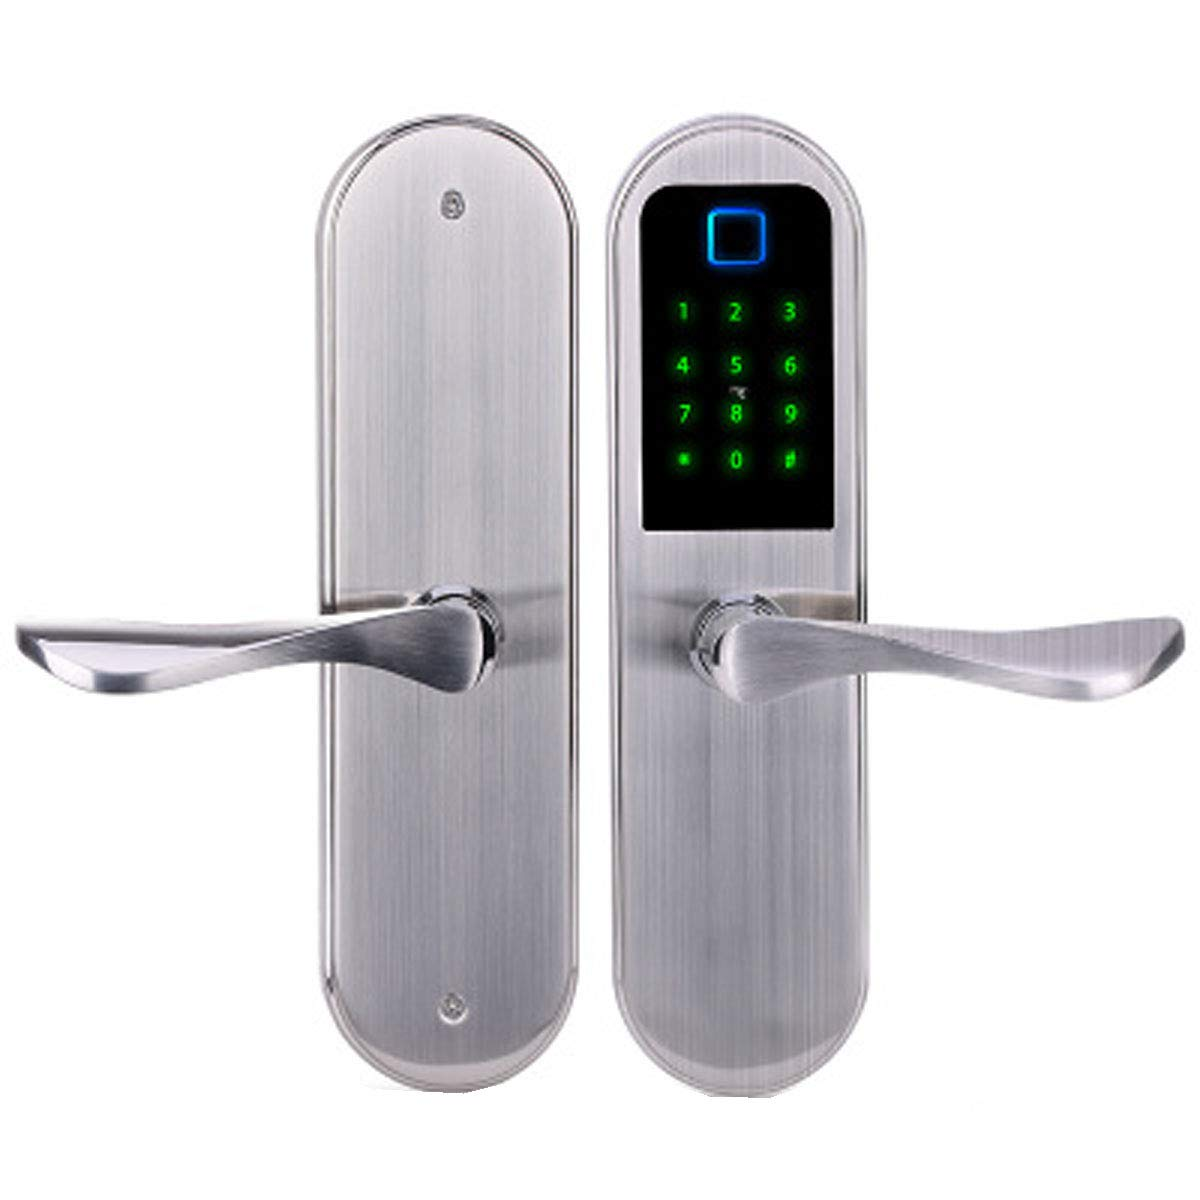 Love of Life Smart Door Locks for Homes Fingerprint Lock with Digital Password IC Card Unlock Function,Apartment Access Control System,Silver